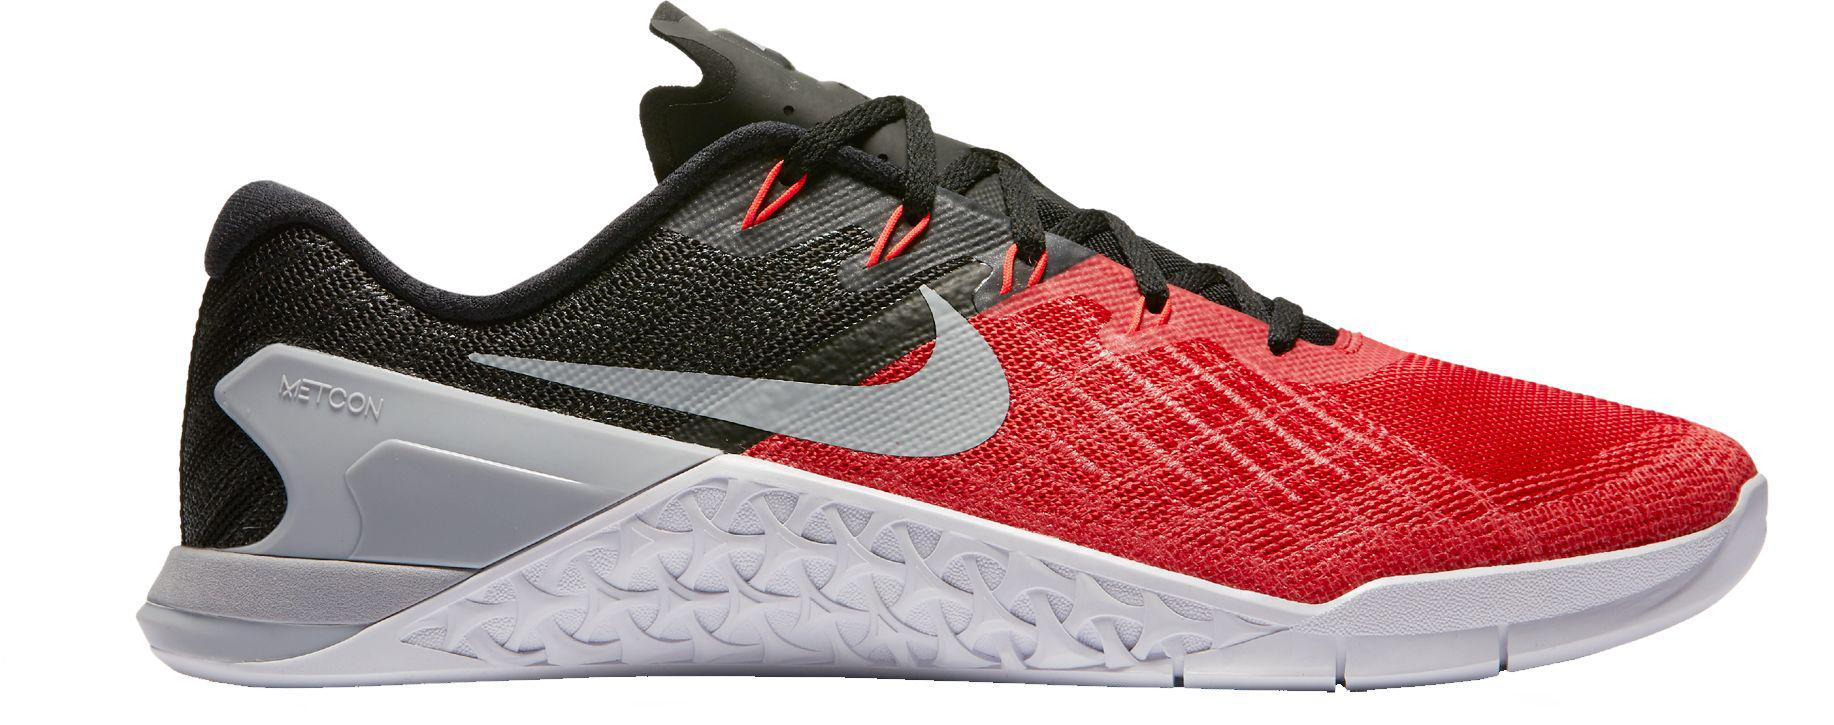 cab823d7e99 Lyst - Nike Metcon 3 Training Shoes in Red for Men